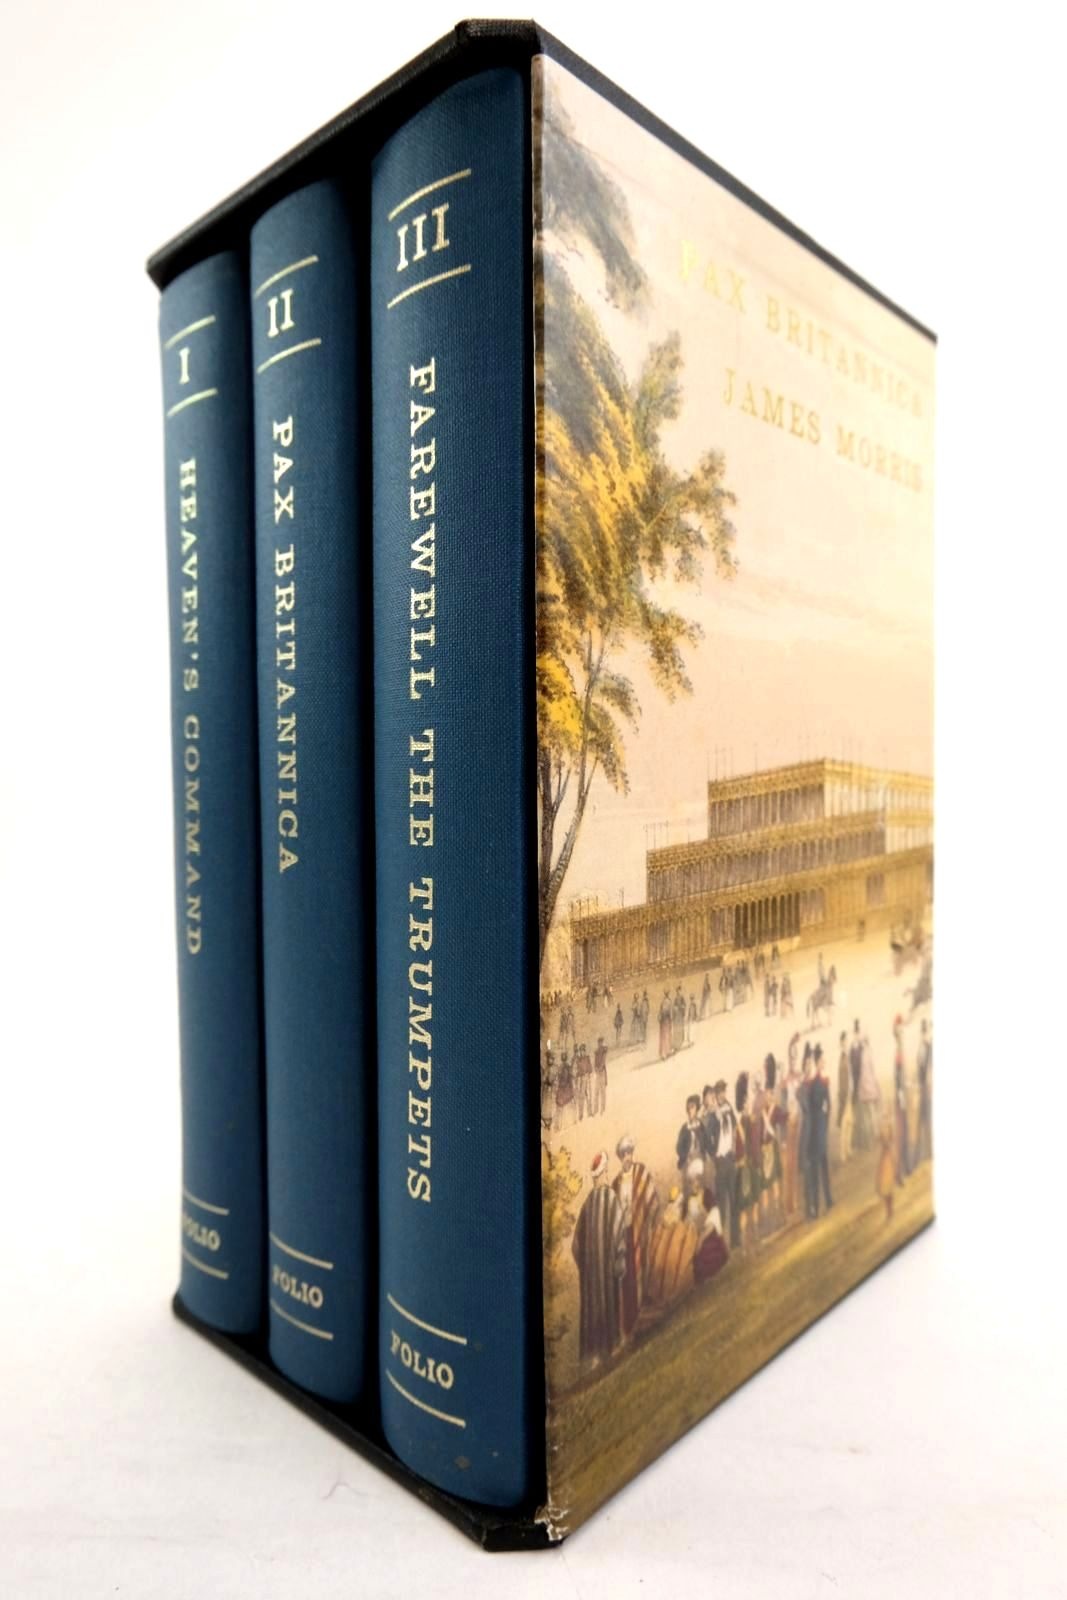 Photo of PAX BRITANNICA (3 VOLUMES) written by Morris, James published by Folio Society (STOCK CODE: 2134463)  for sale by Stella & Rose's Books